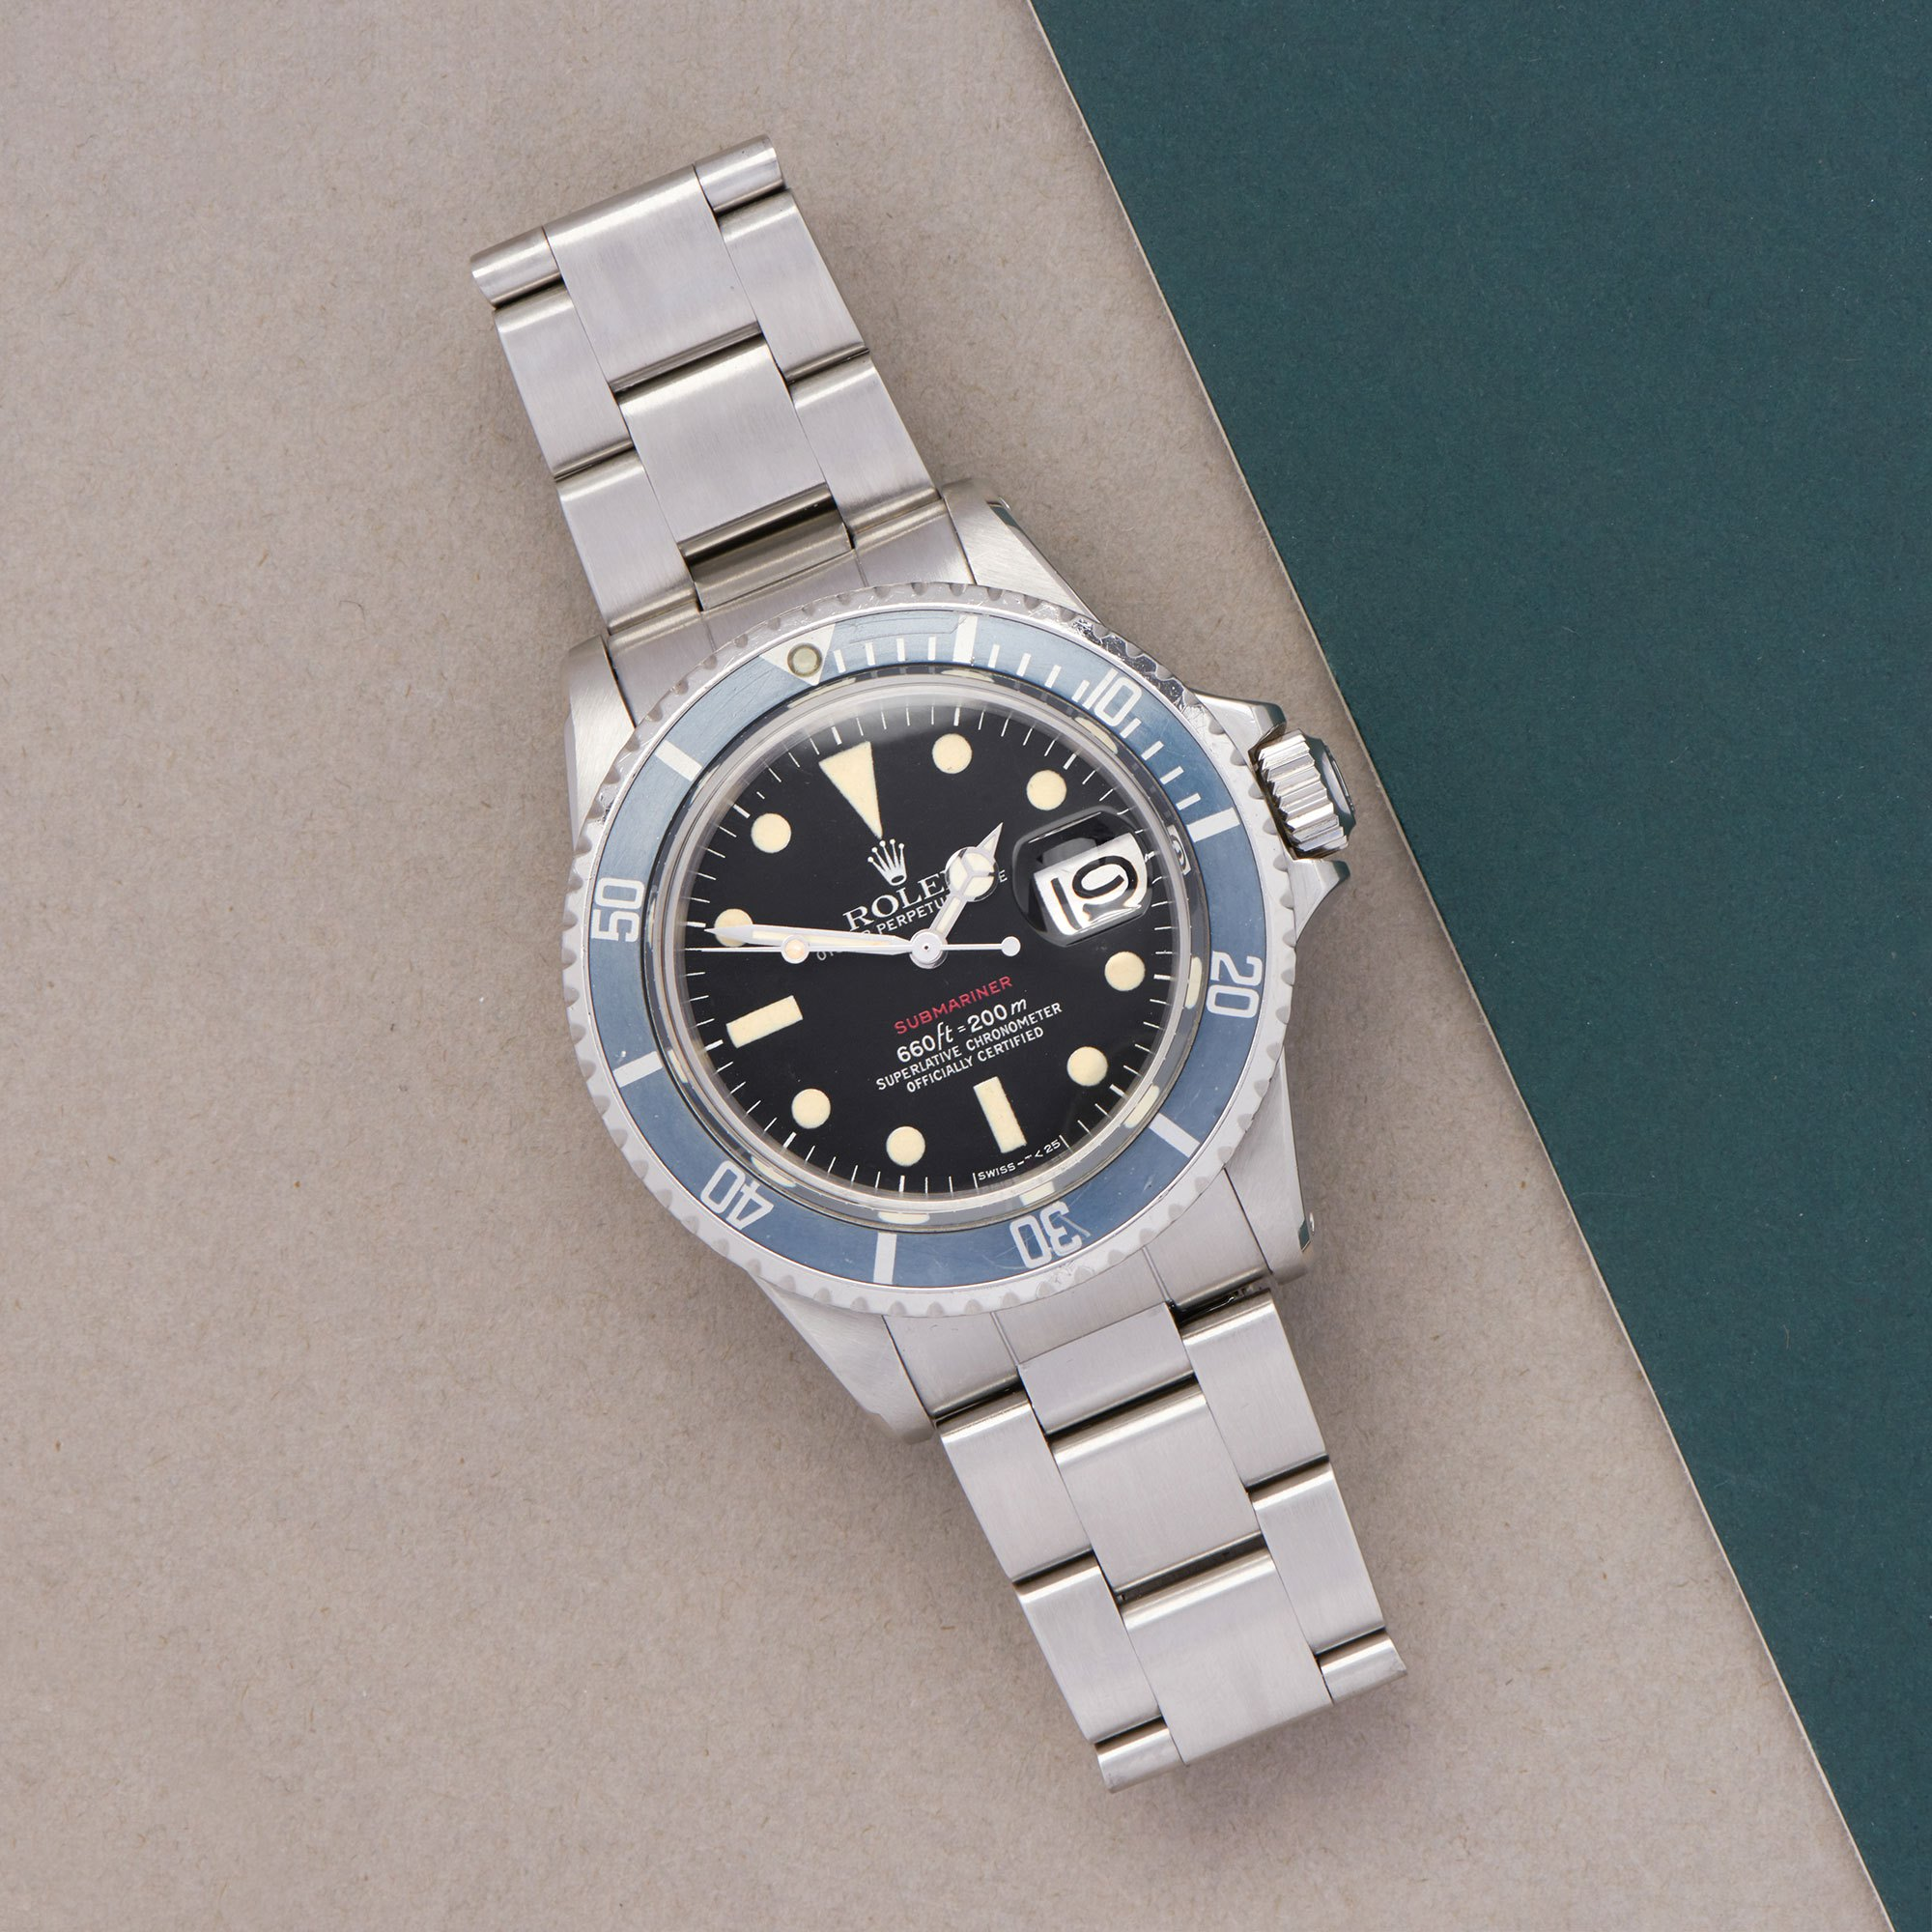 Rolex Submariner Date 'Single Red' Stainless Steel - 1680 Roestvrij Staal 1680